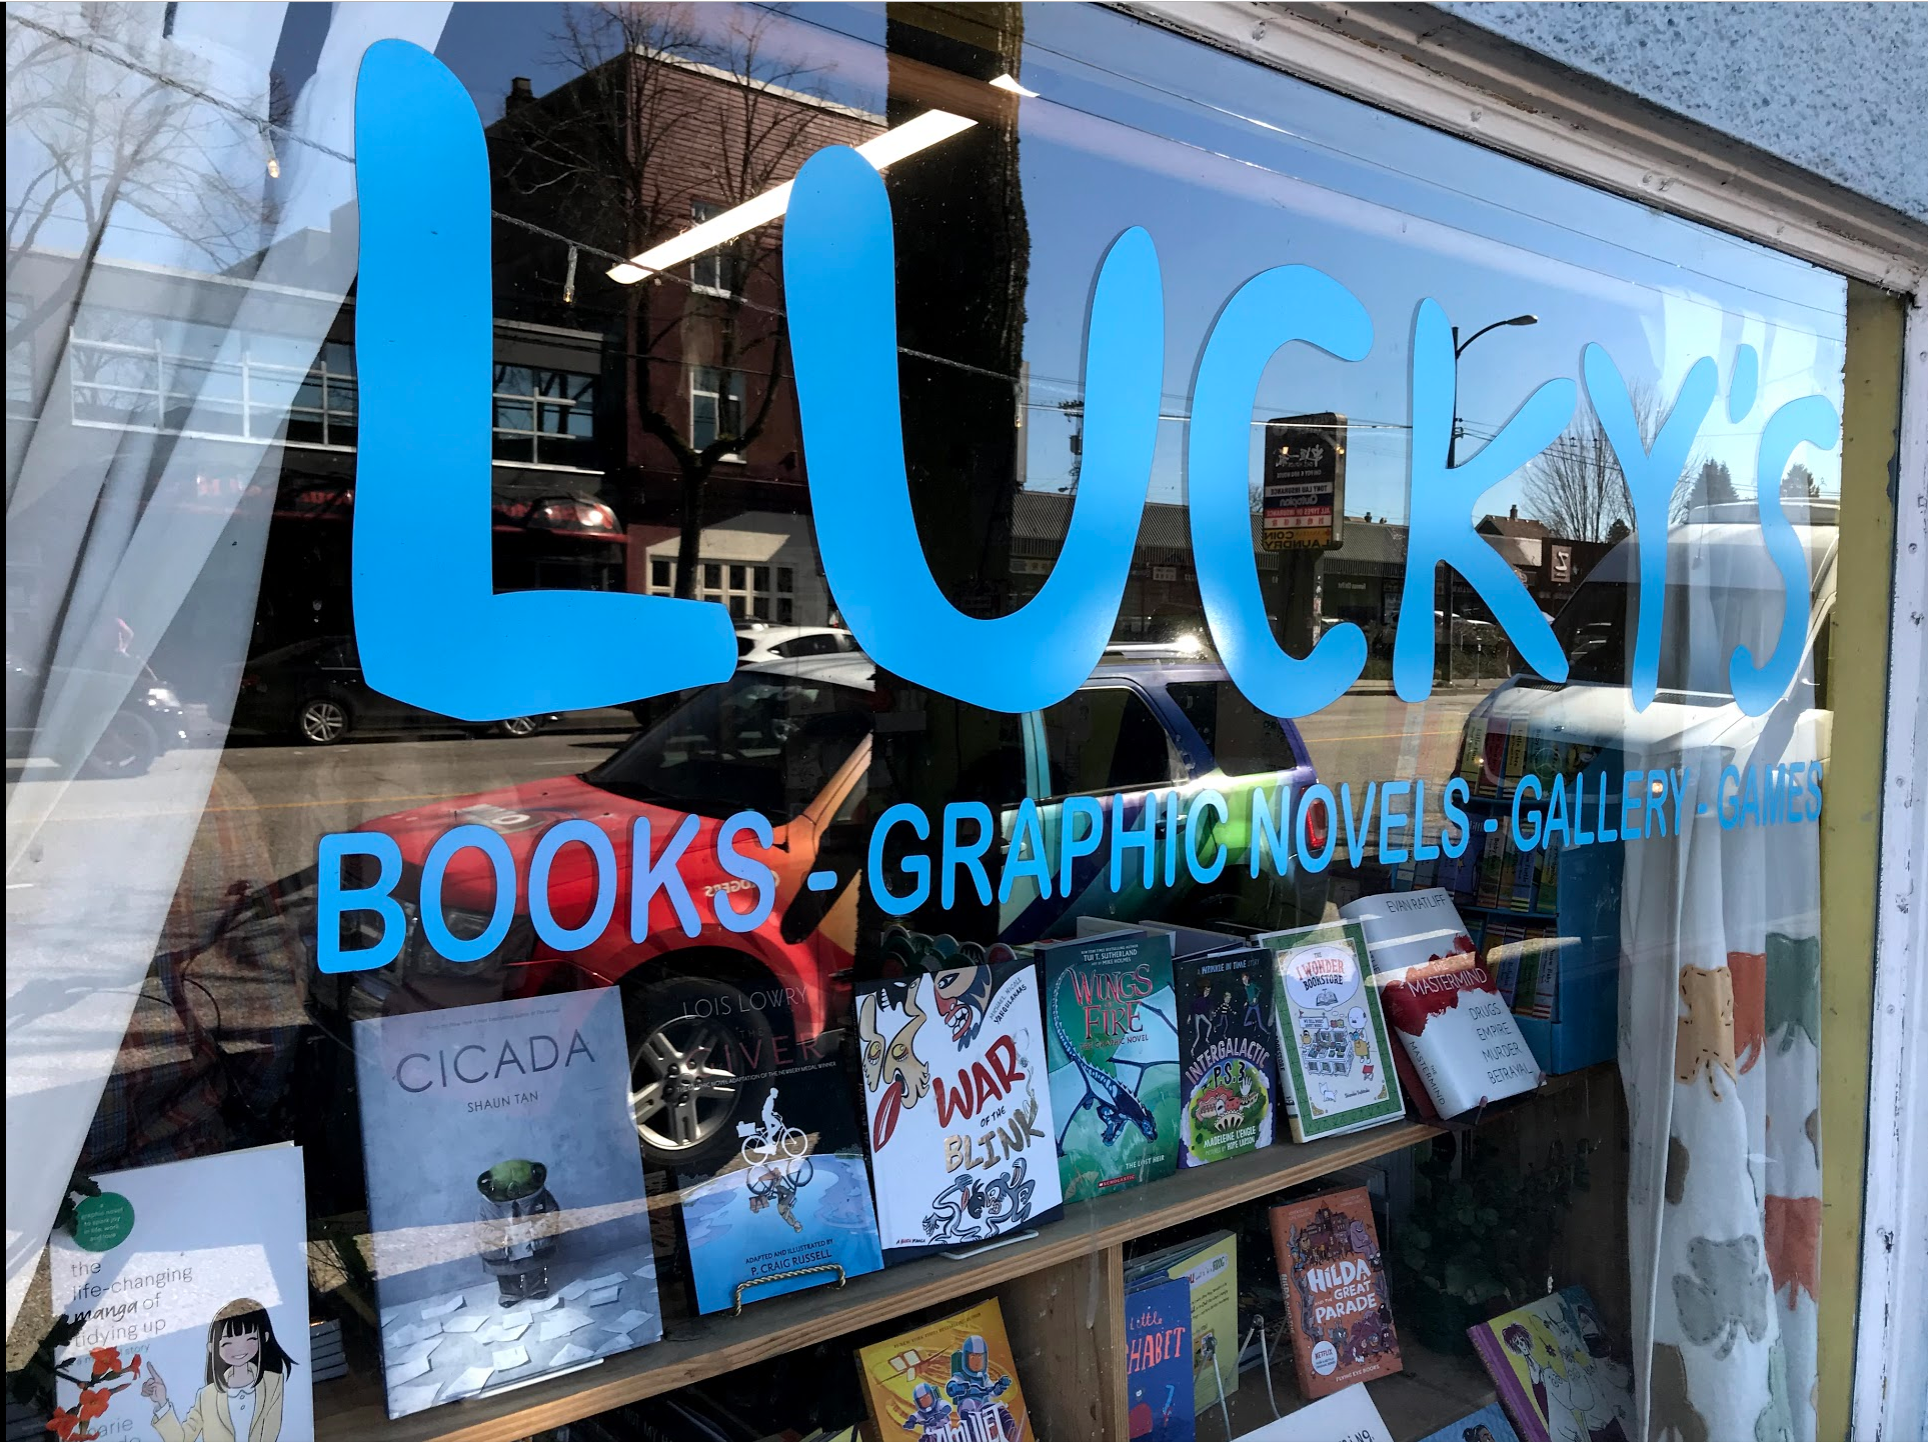 """There are several used bookstores like this one. No I didn't get lucky at this bookstore but I did the next day at Paper Hound Bookshop the next day - a signed copy of Jane Jacobs' """"Systems of Survival."""""""